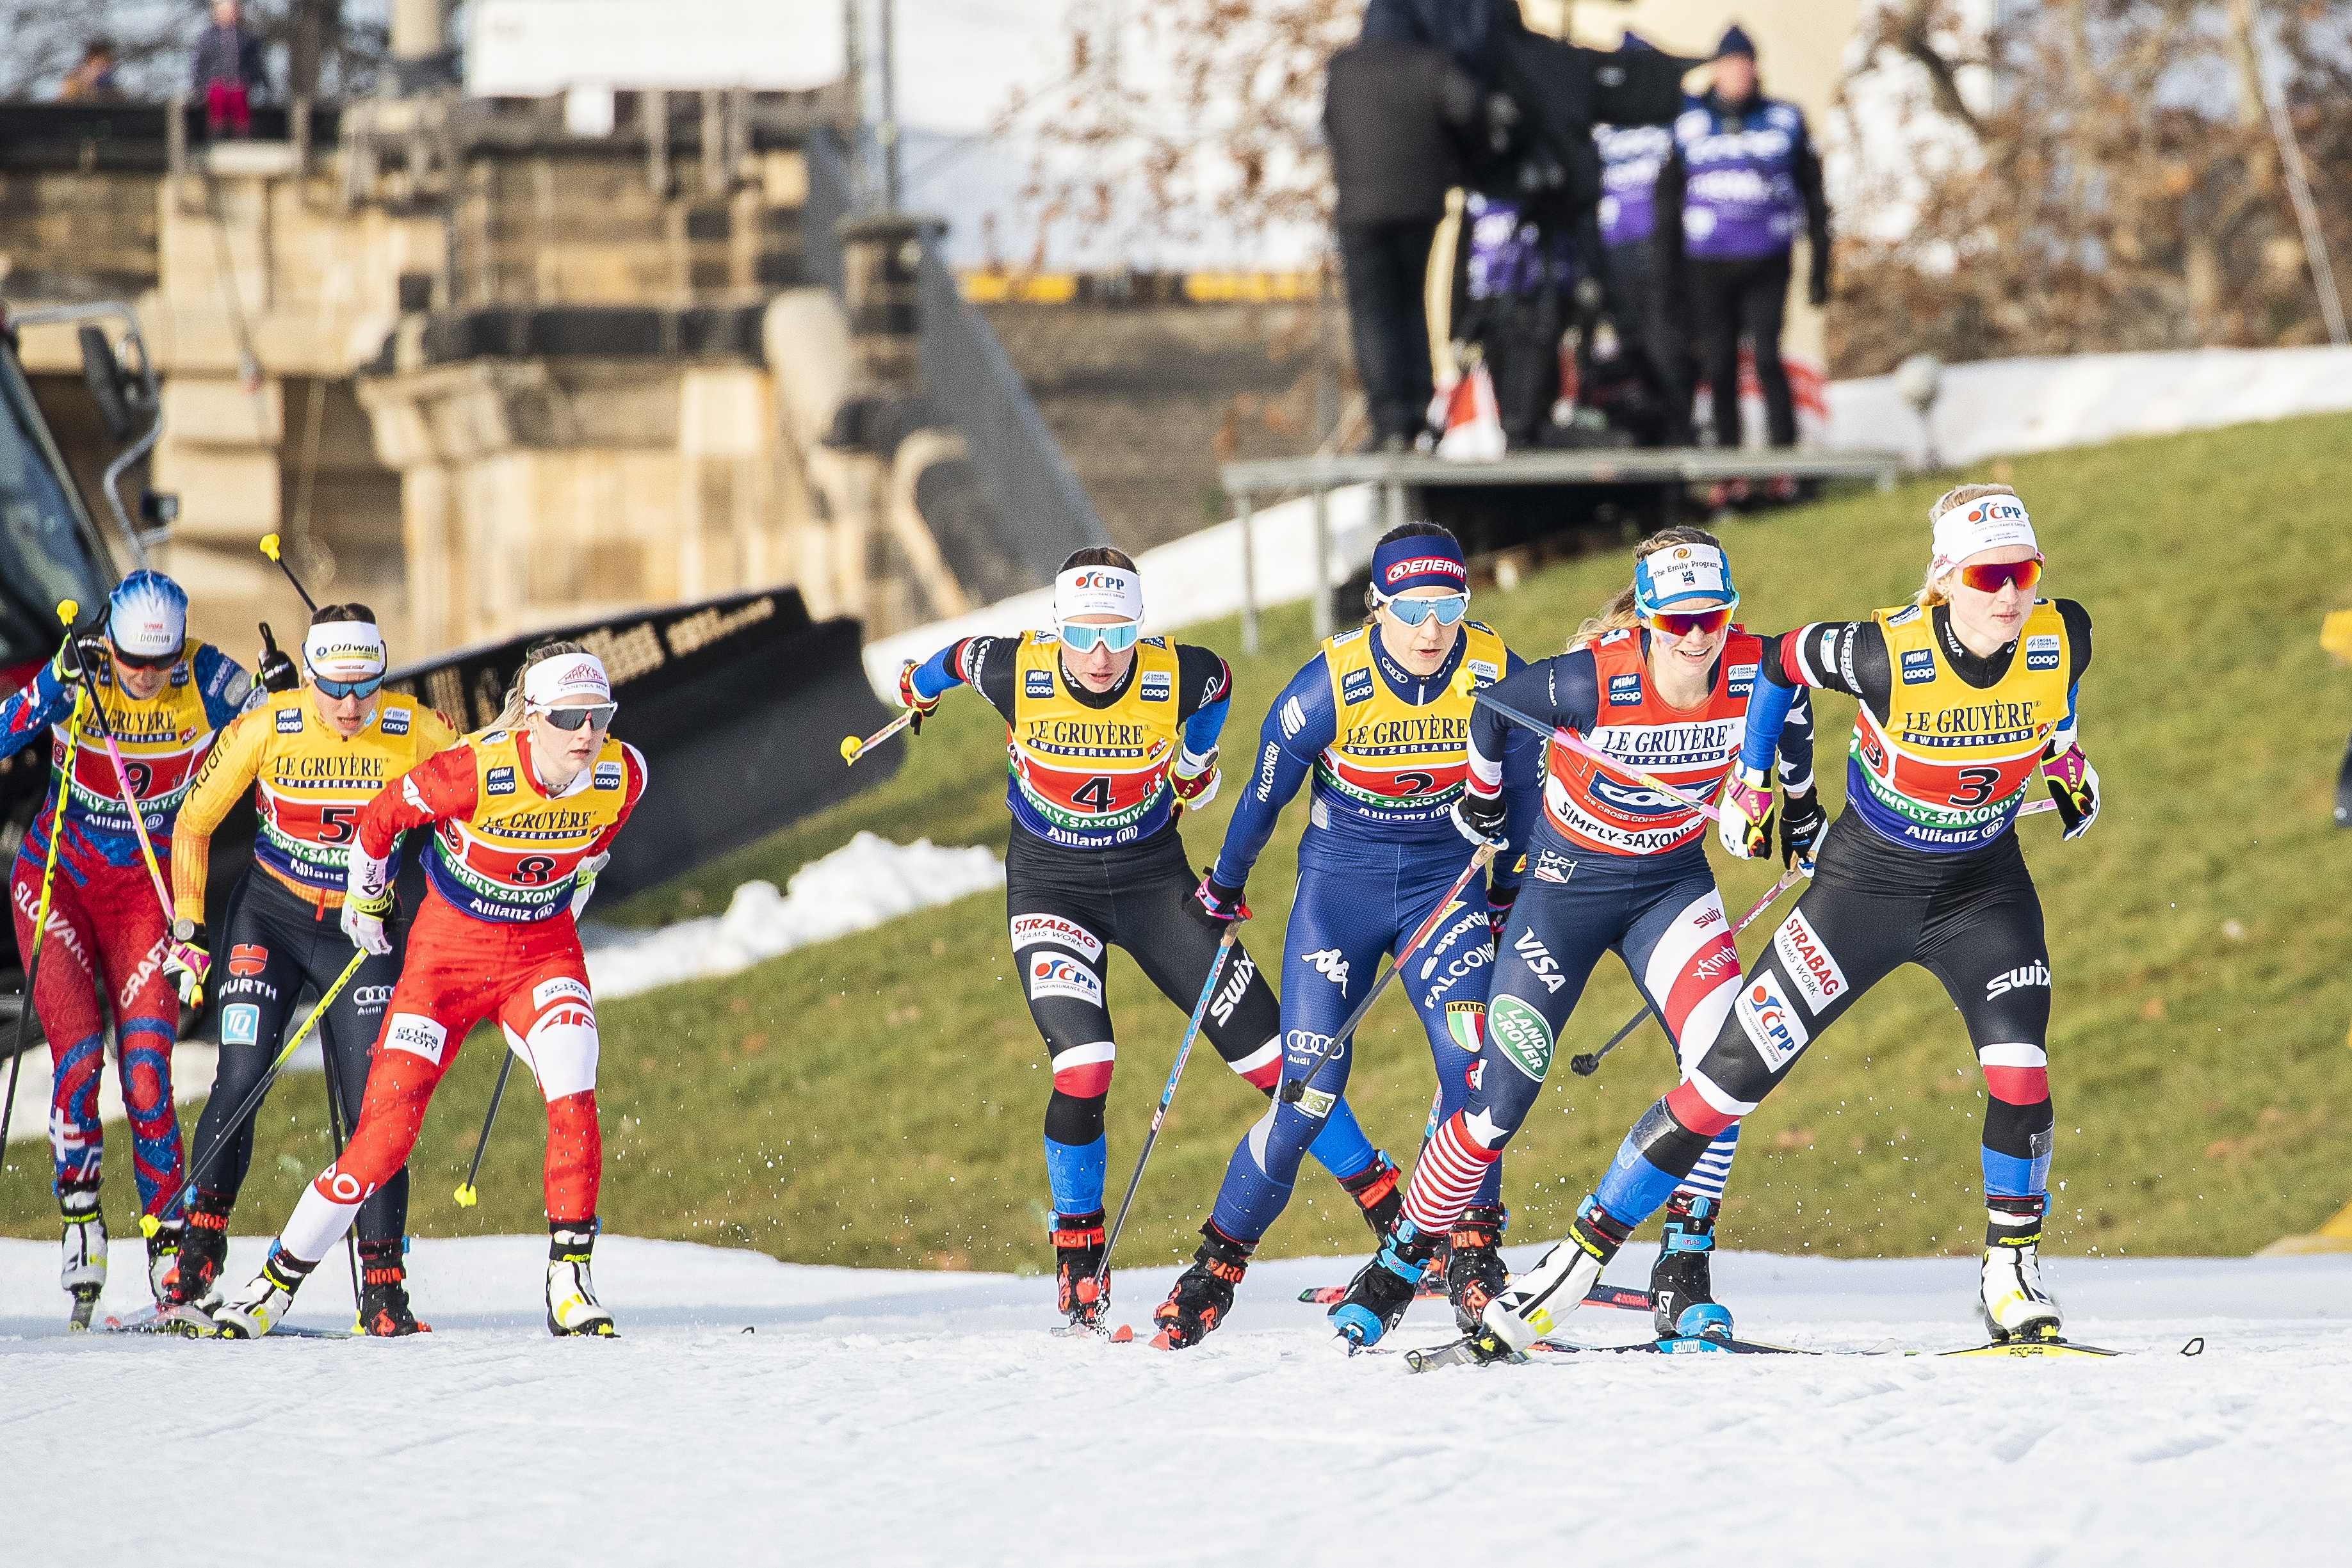 Jessie Diggins leads the pack during Sunday's FIS Cross Country World Cup team sprint in Dresden, Germany. (Modica/NordicFocus)